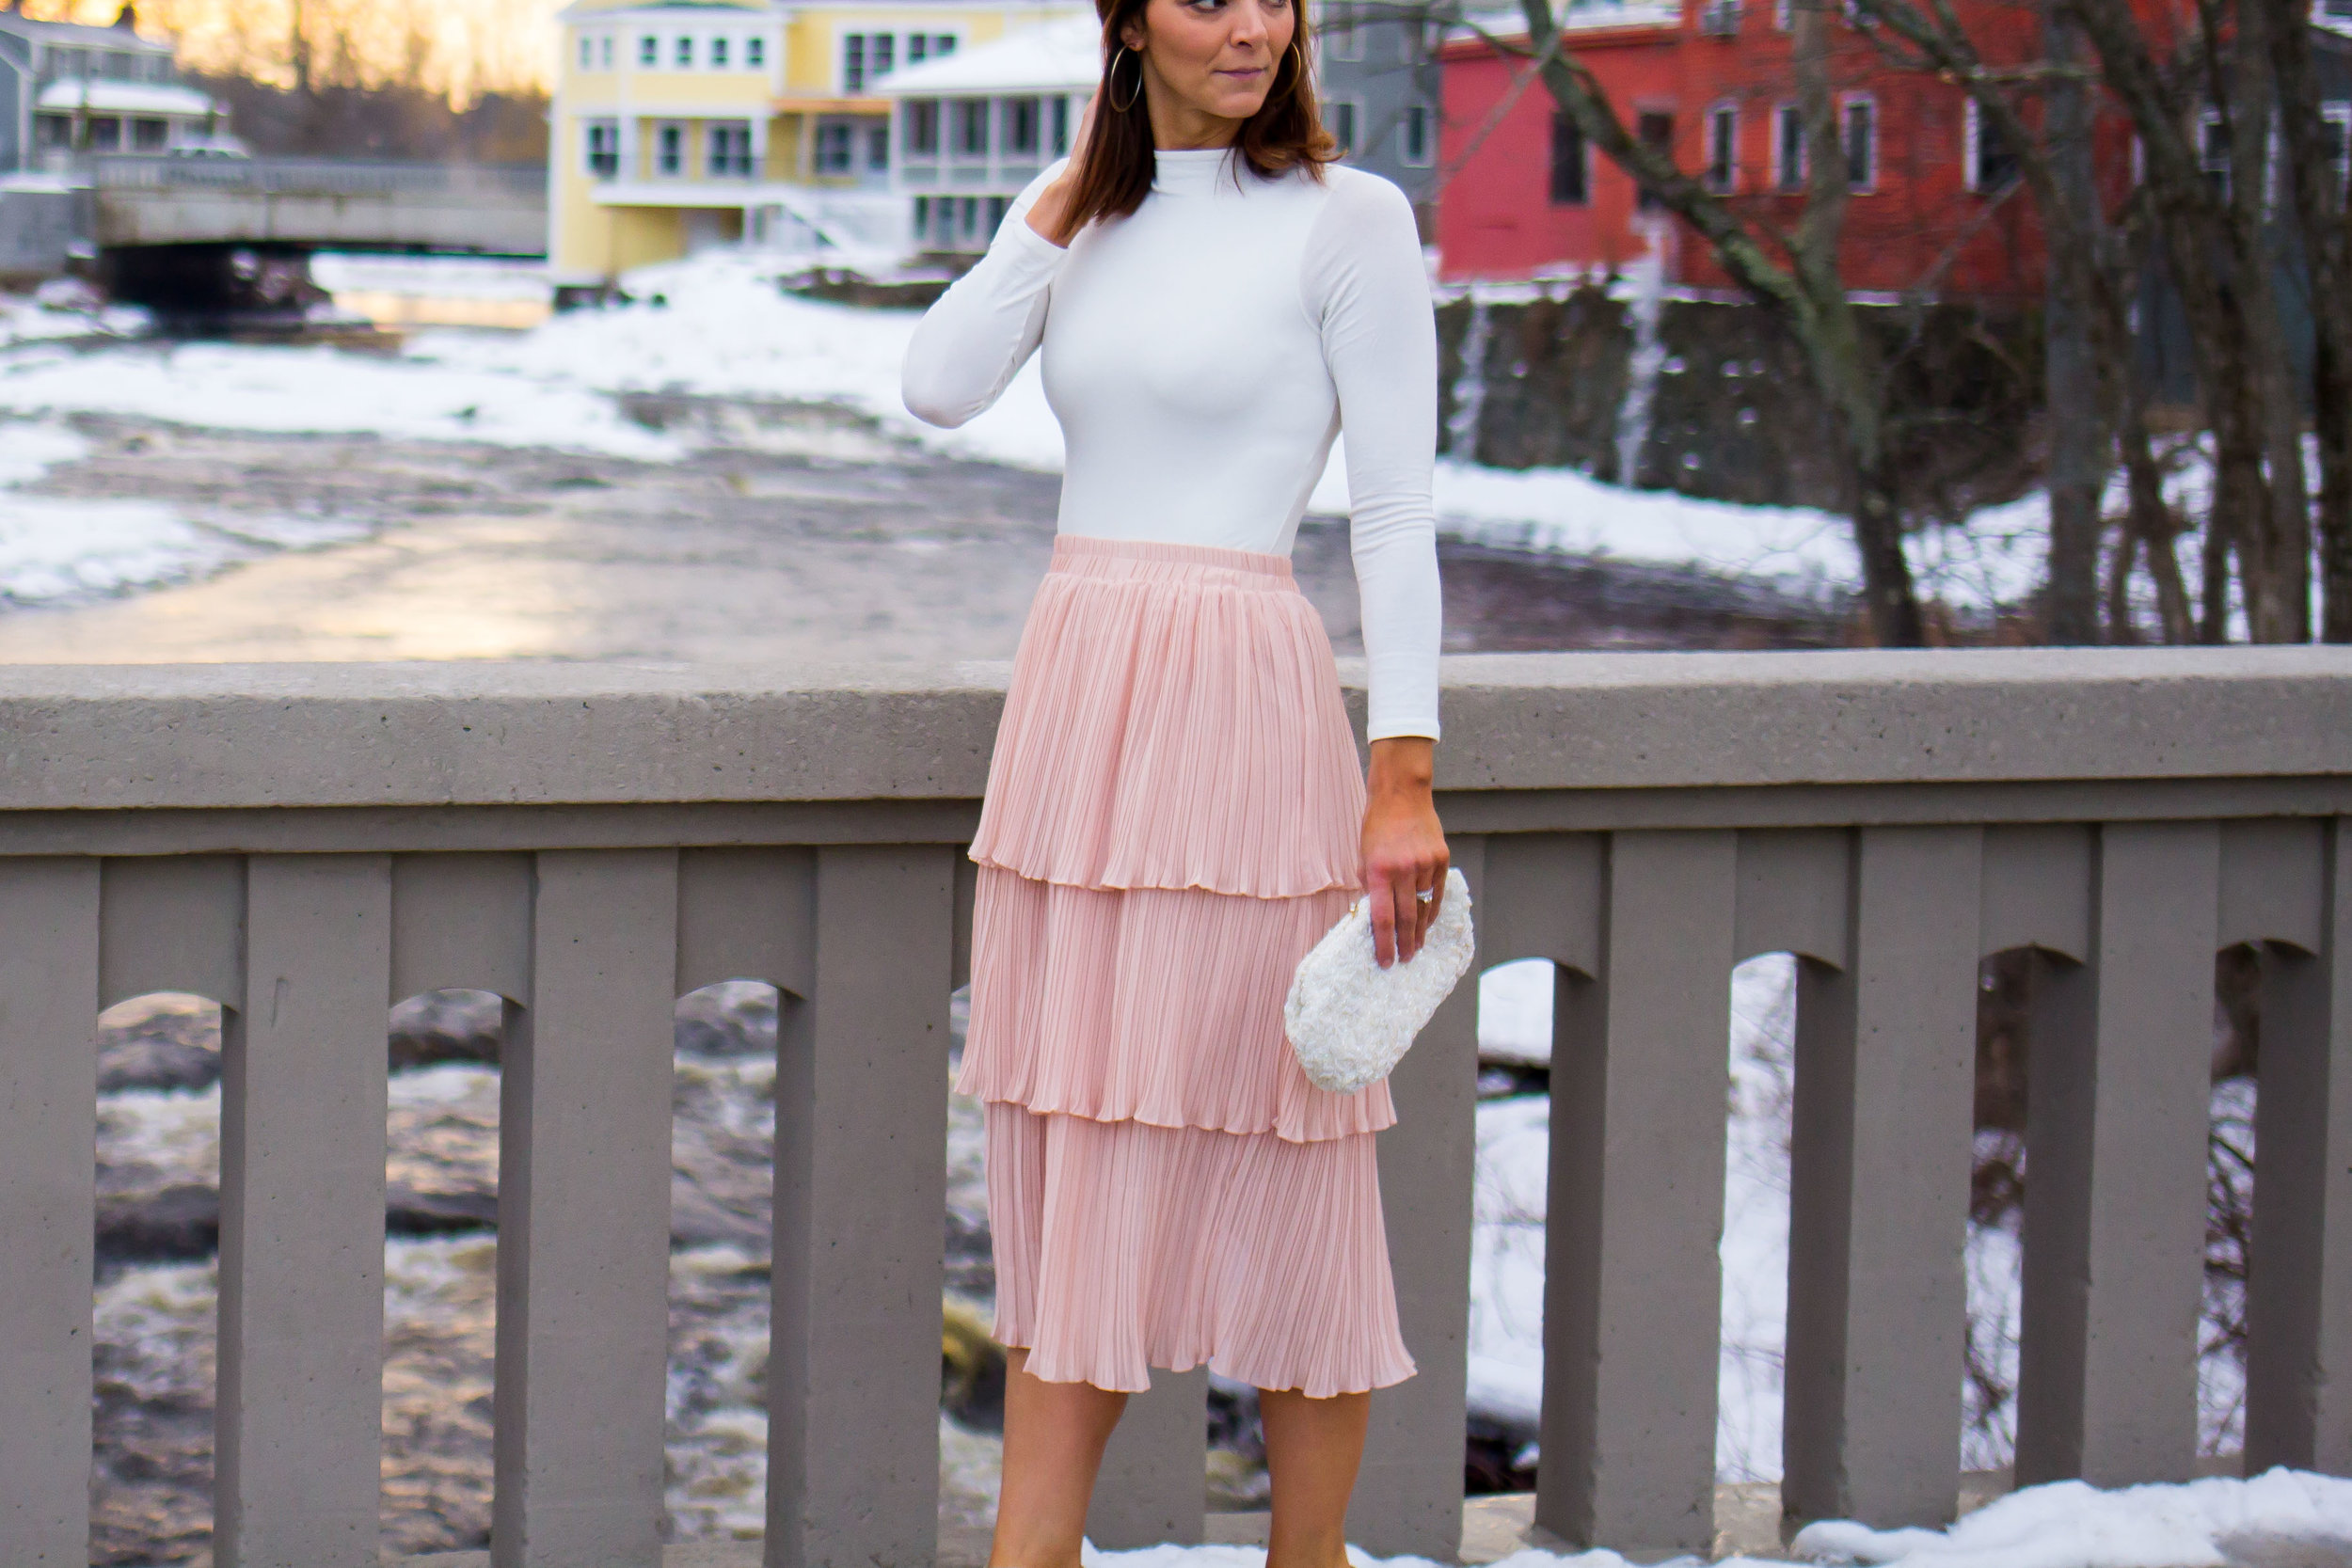 Midi Skirt Outfits - Tiered Skirt Outfits -Ruffle Midi Skirt Outfits - Nude Skirt Outfits - Blush Skirt Outfits -Fashion for Women -  heartandseam.com  #heartandseam